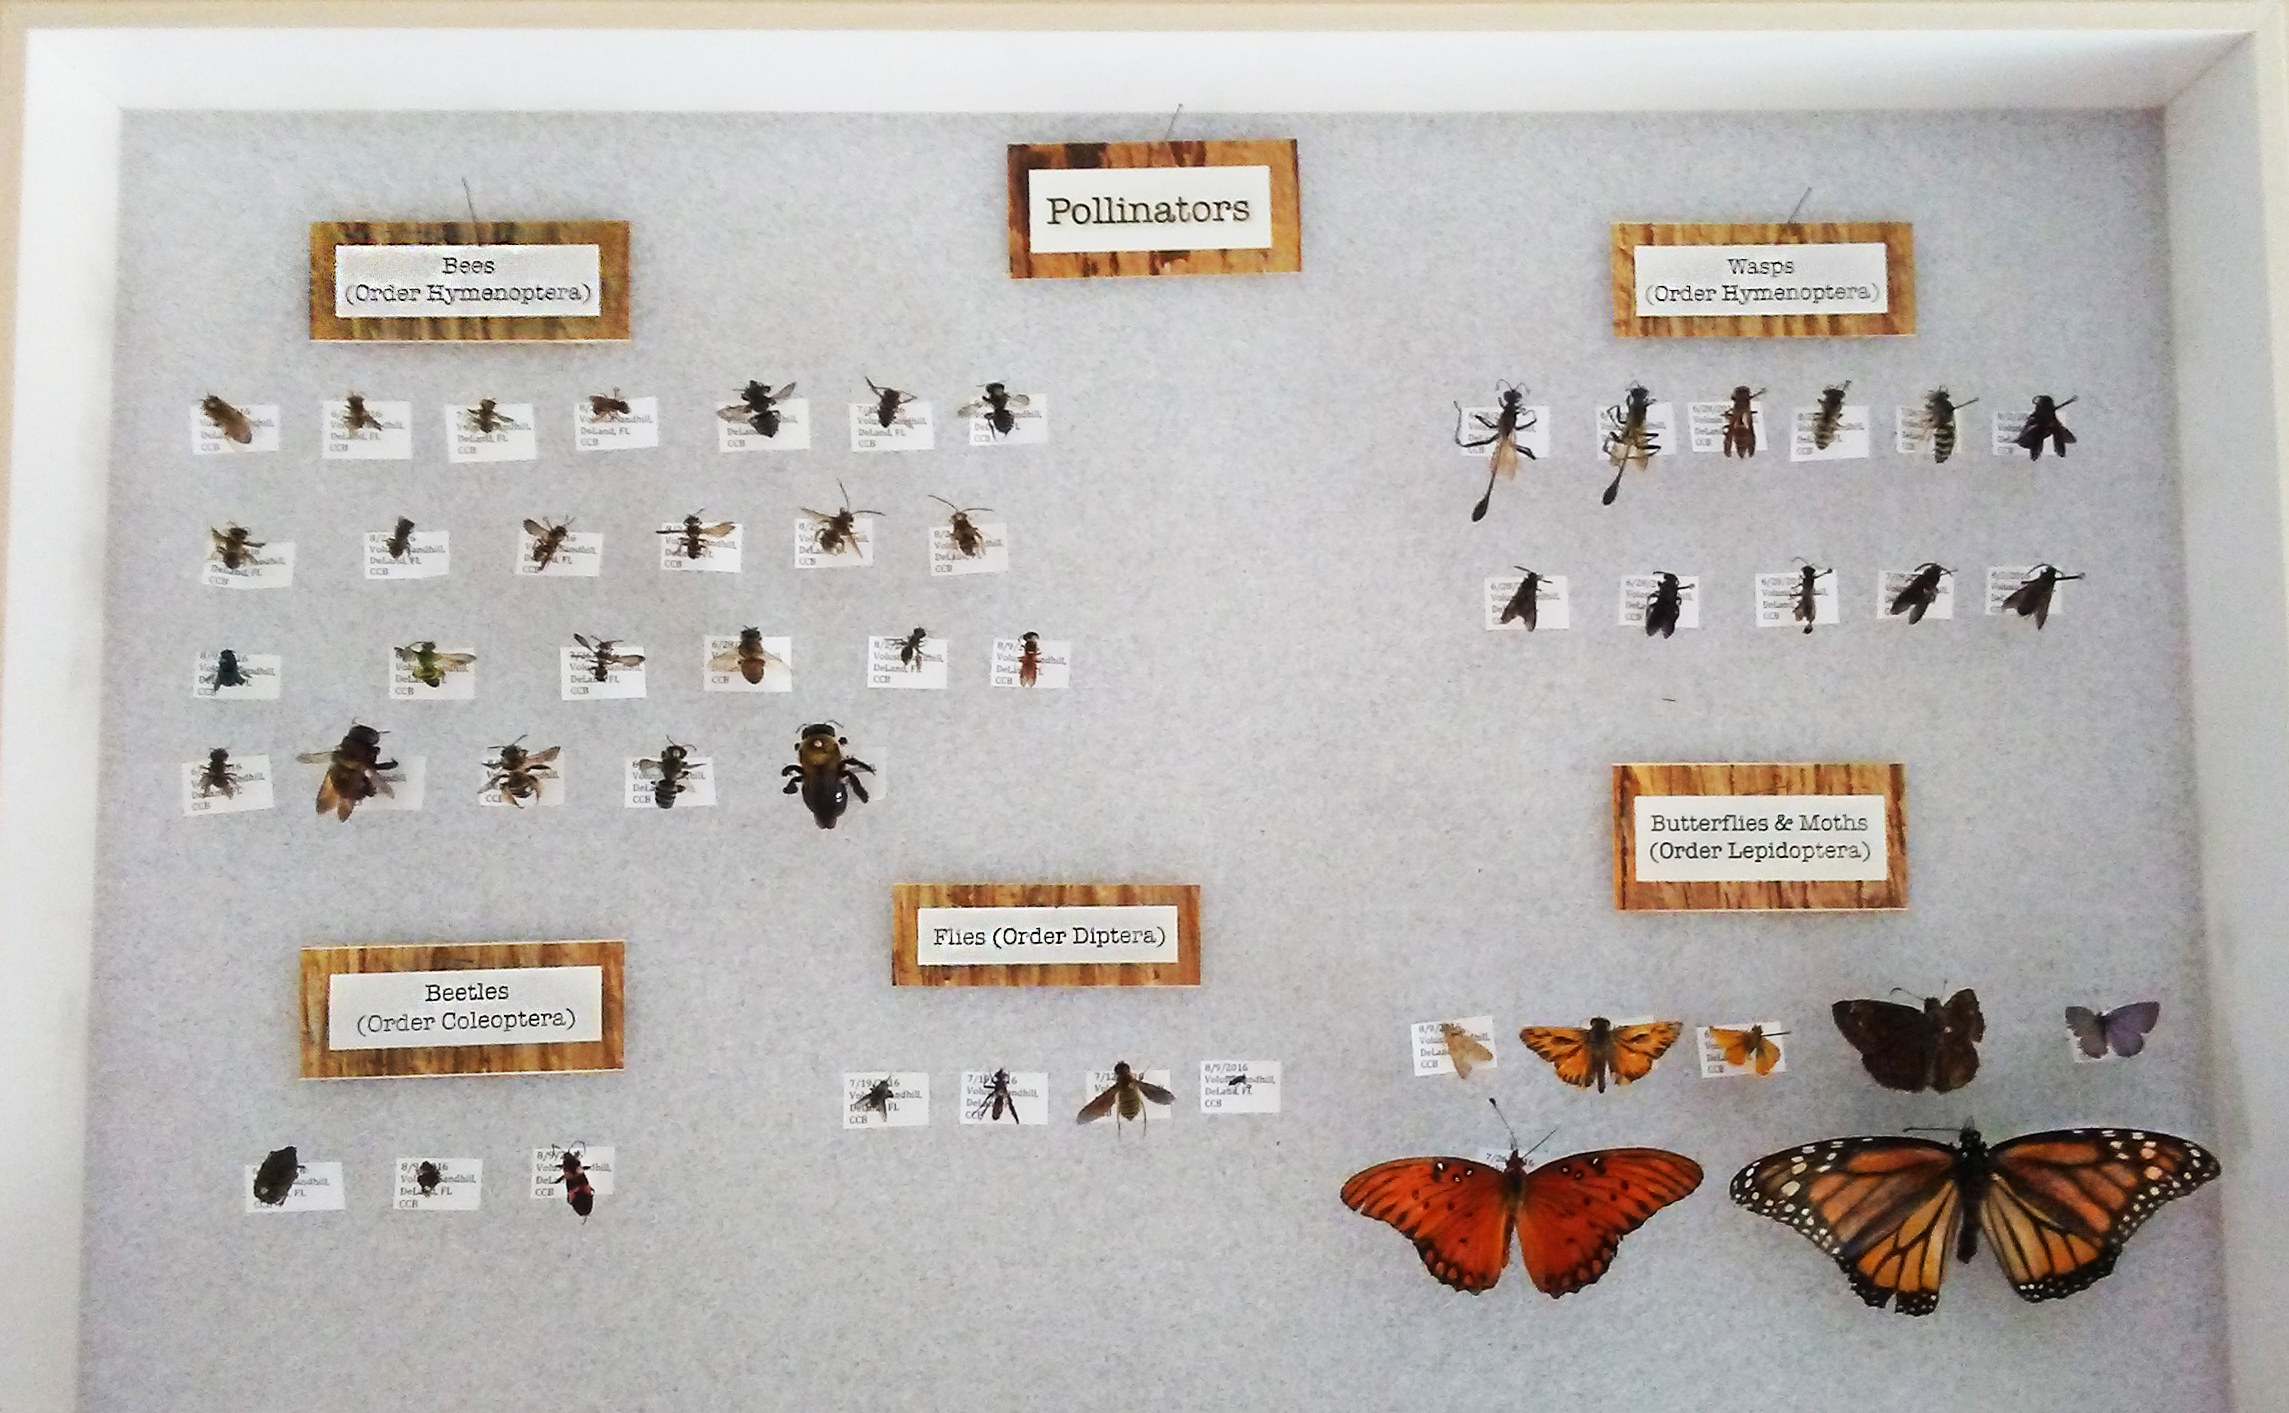 pollinator collection